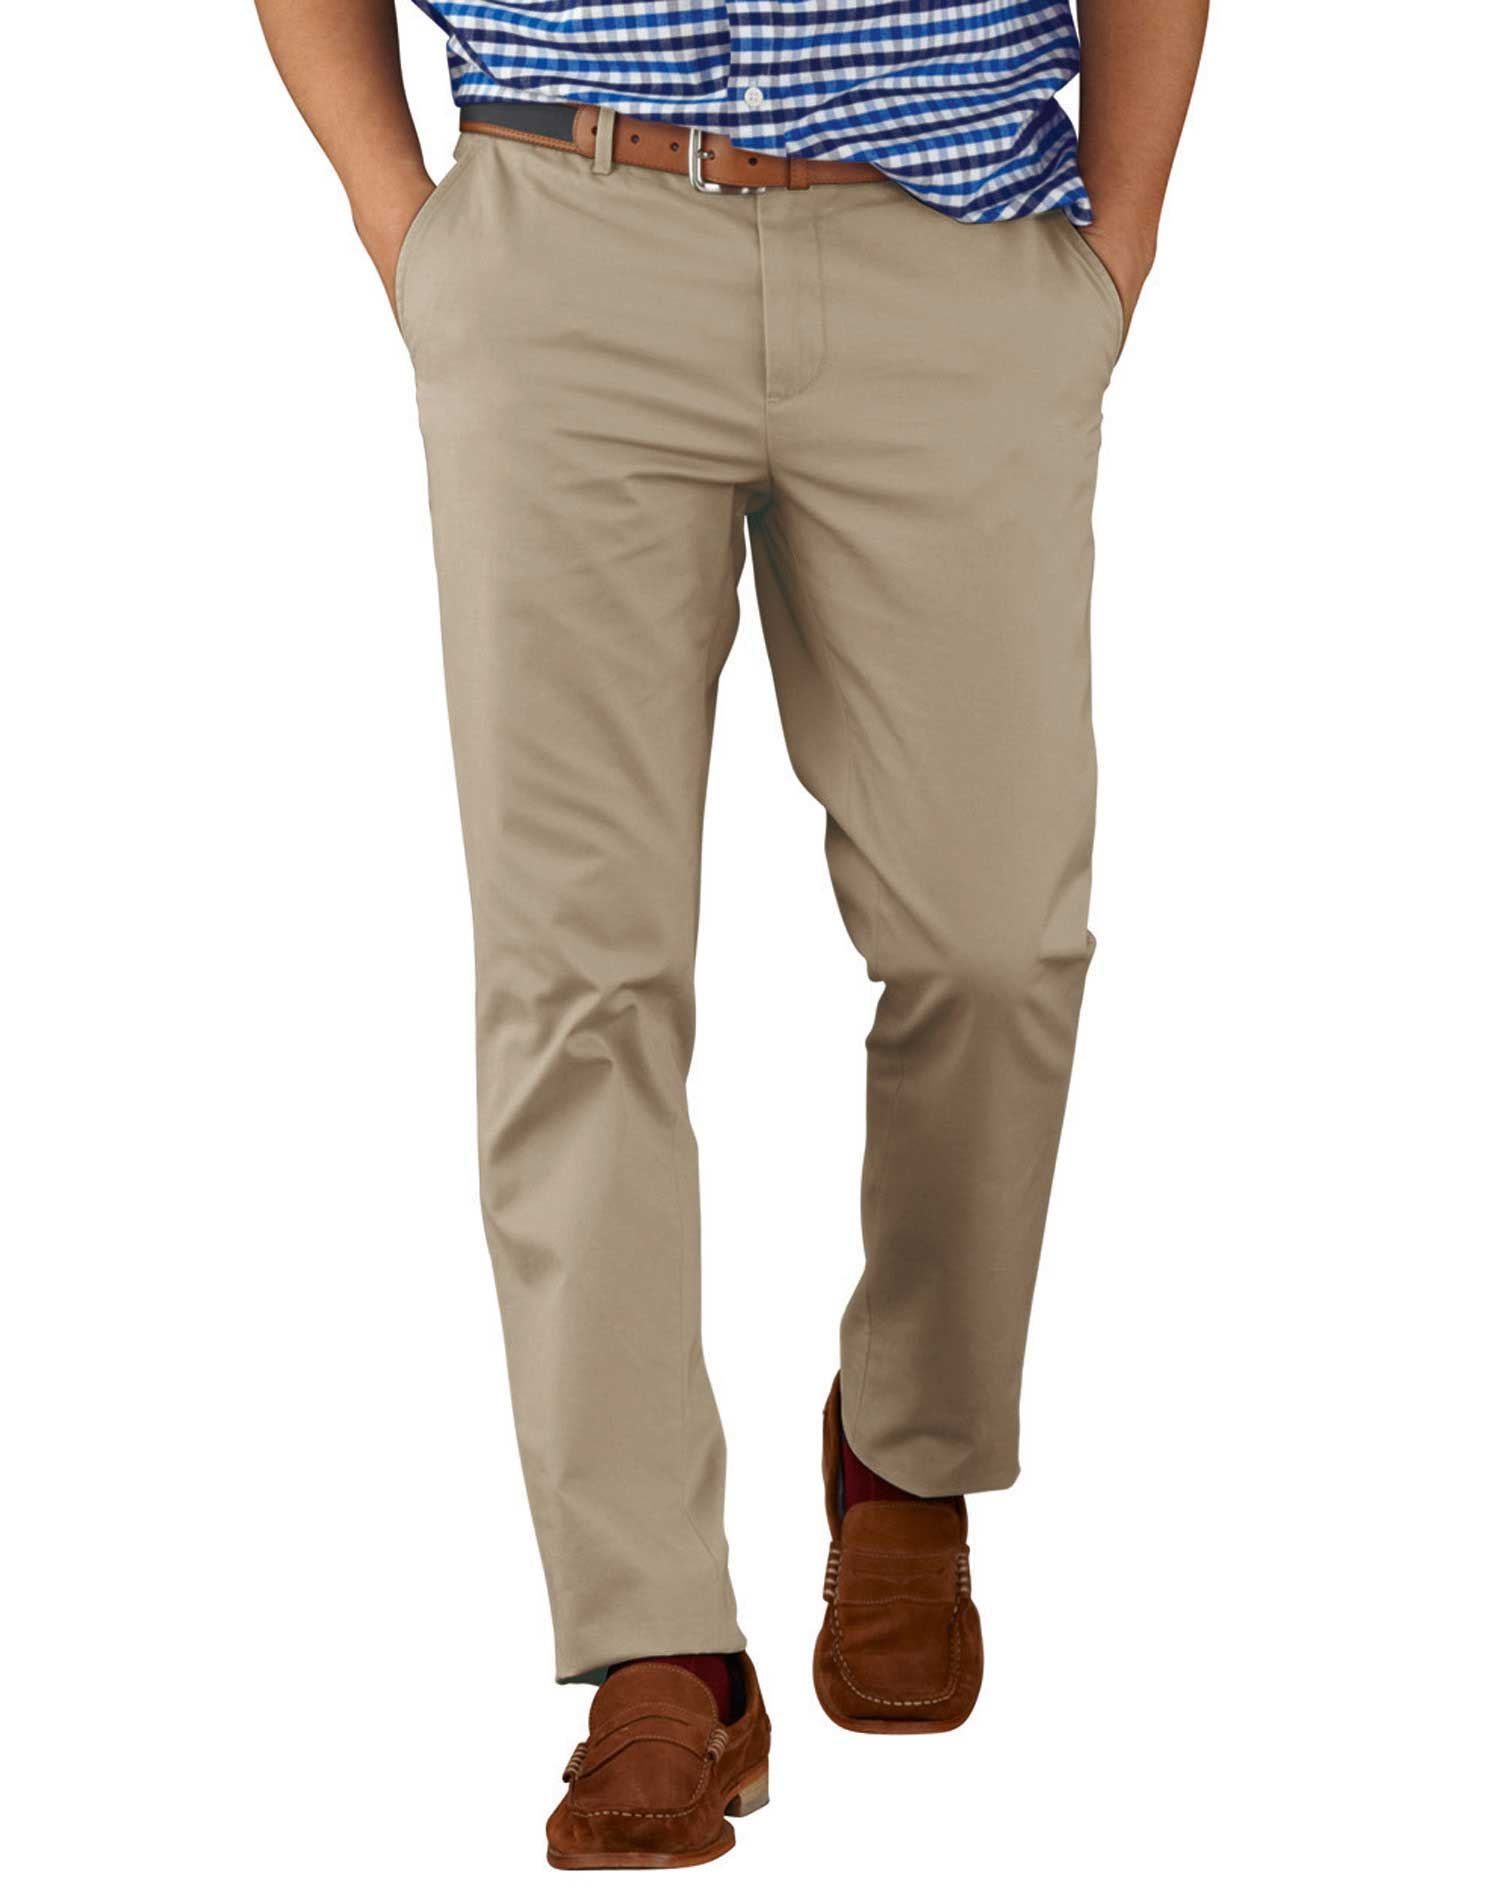 Stone Extra Slim Fit Flat Front Cotton Chino Trousers Size W32 L29 by Charles Tyrwhitt